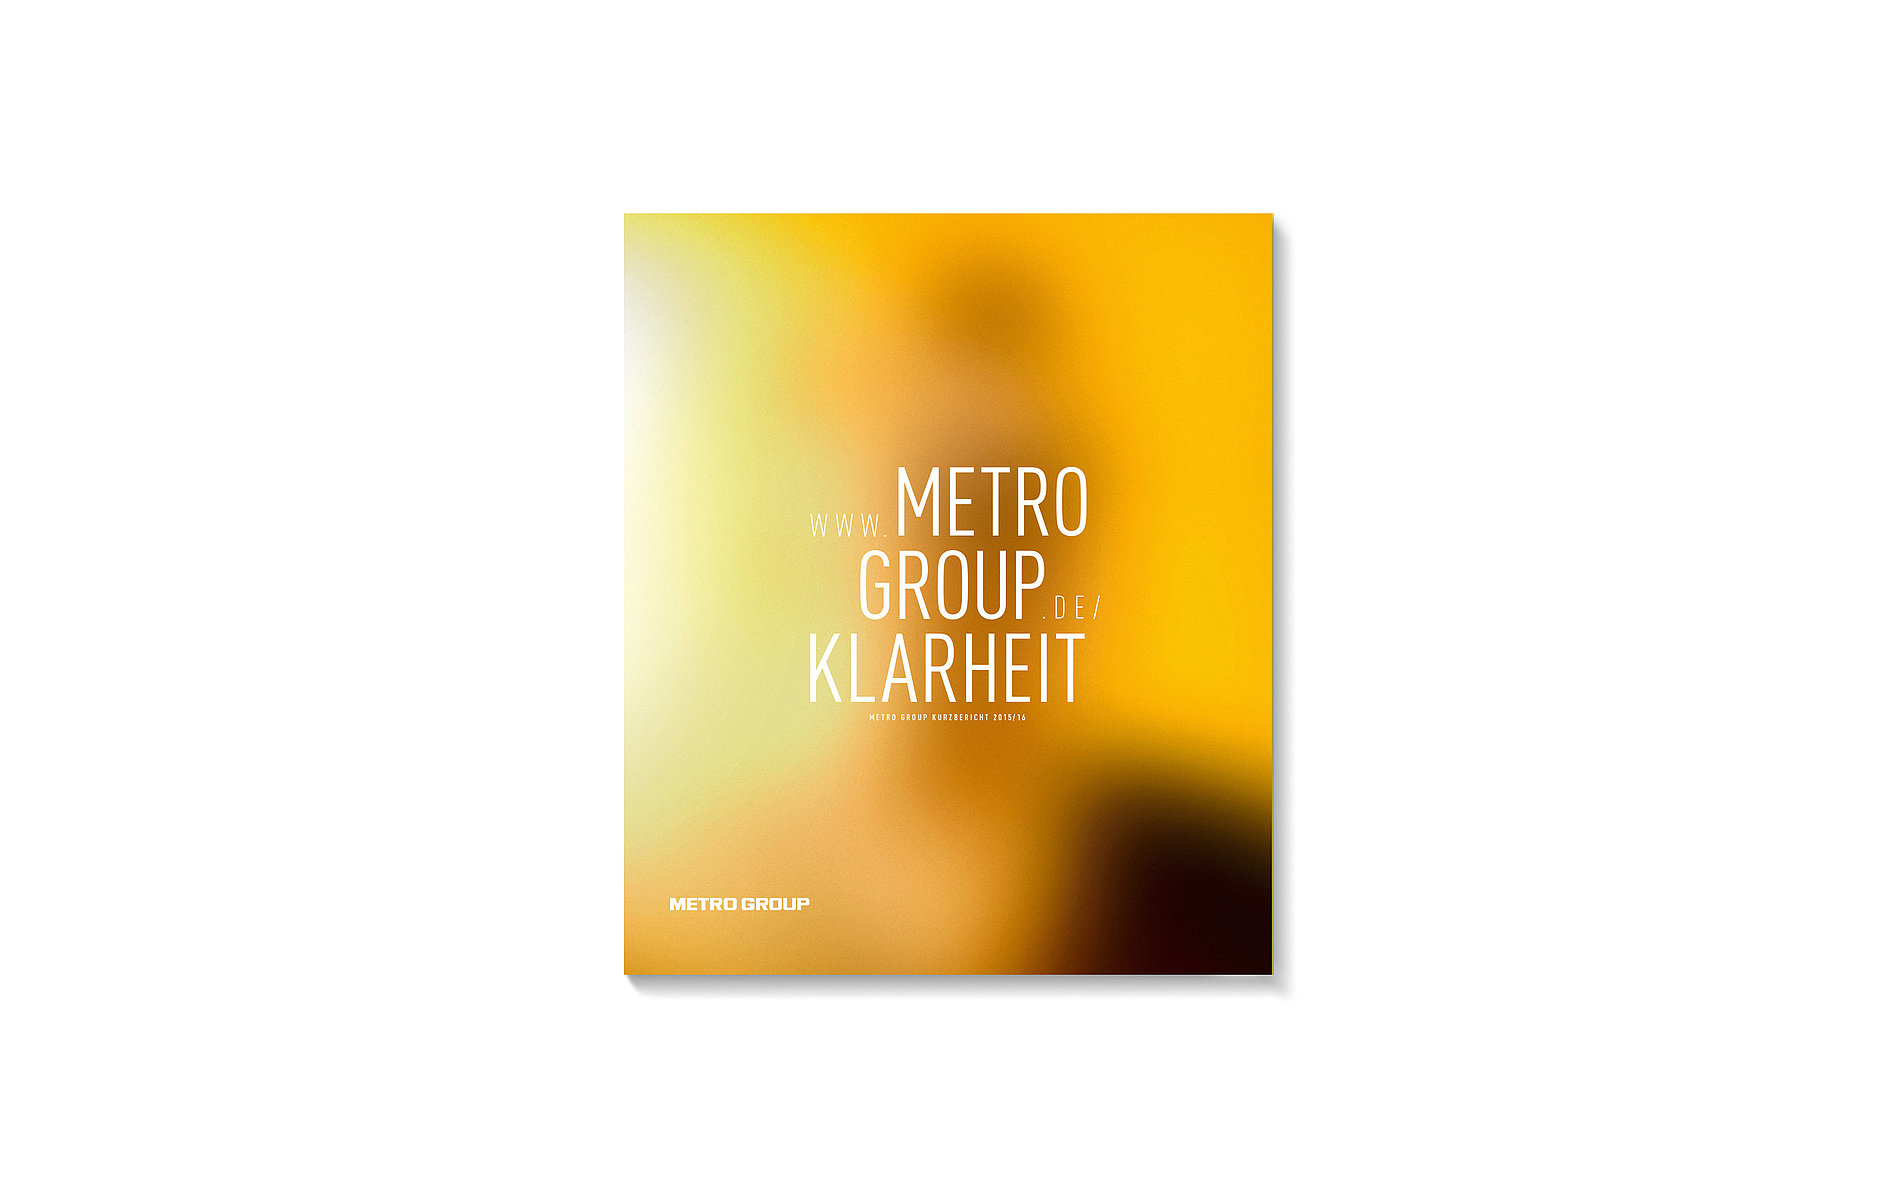 Clarity – METRO GROUP Annual Report 2015/2016 | Red Dot Design Award